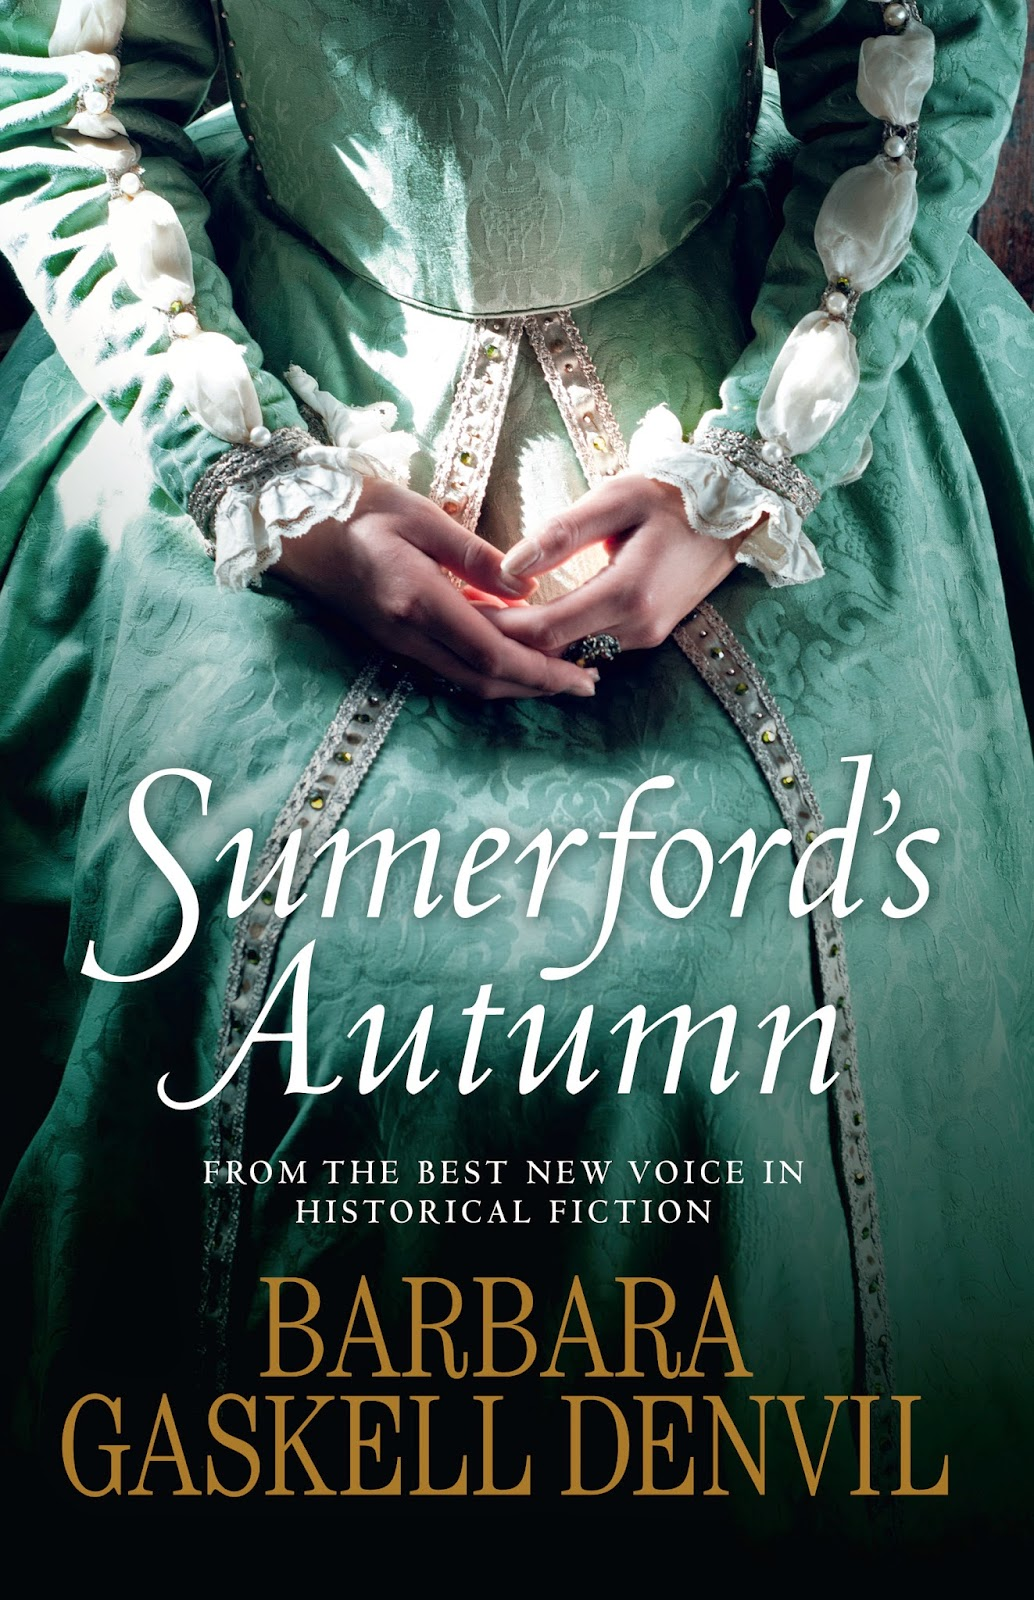 http://books.simonandschuster.com.au/Sumerfords-Autumn/Denvil-Barbara-Gaskell/9781922052599